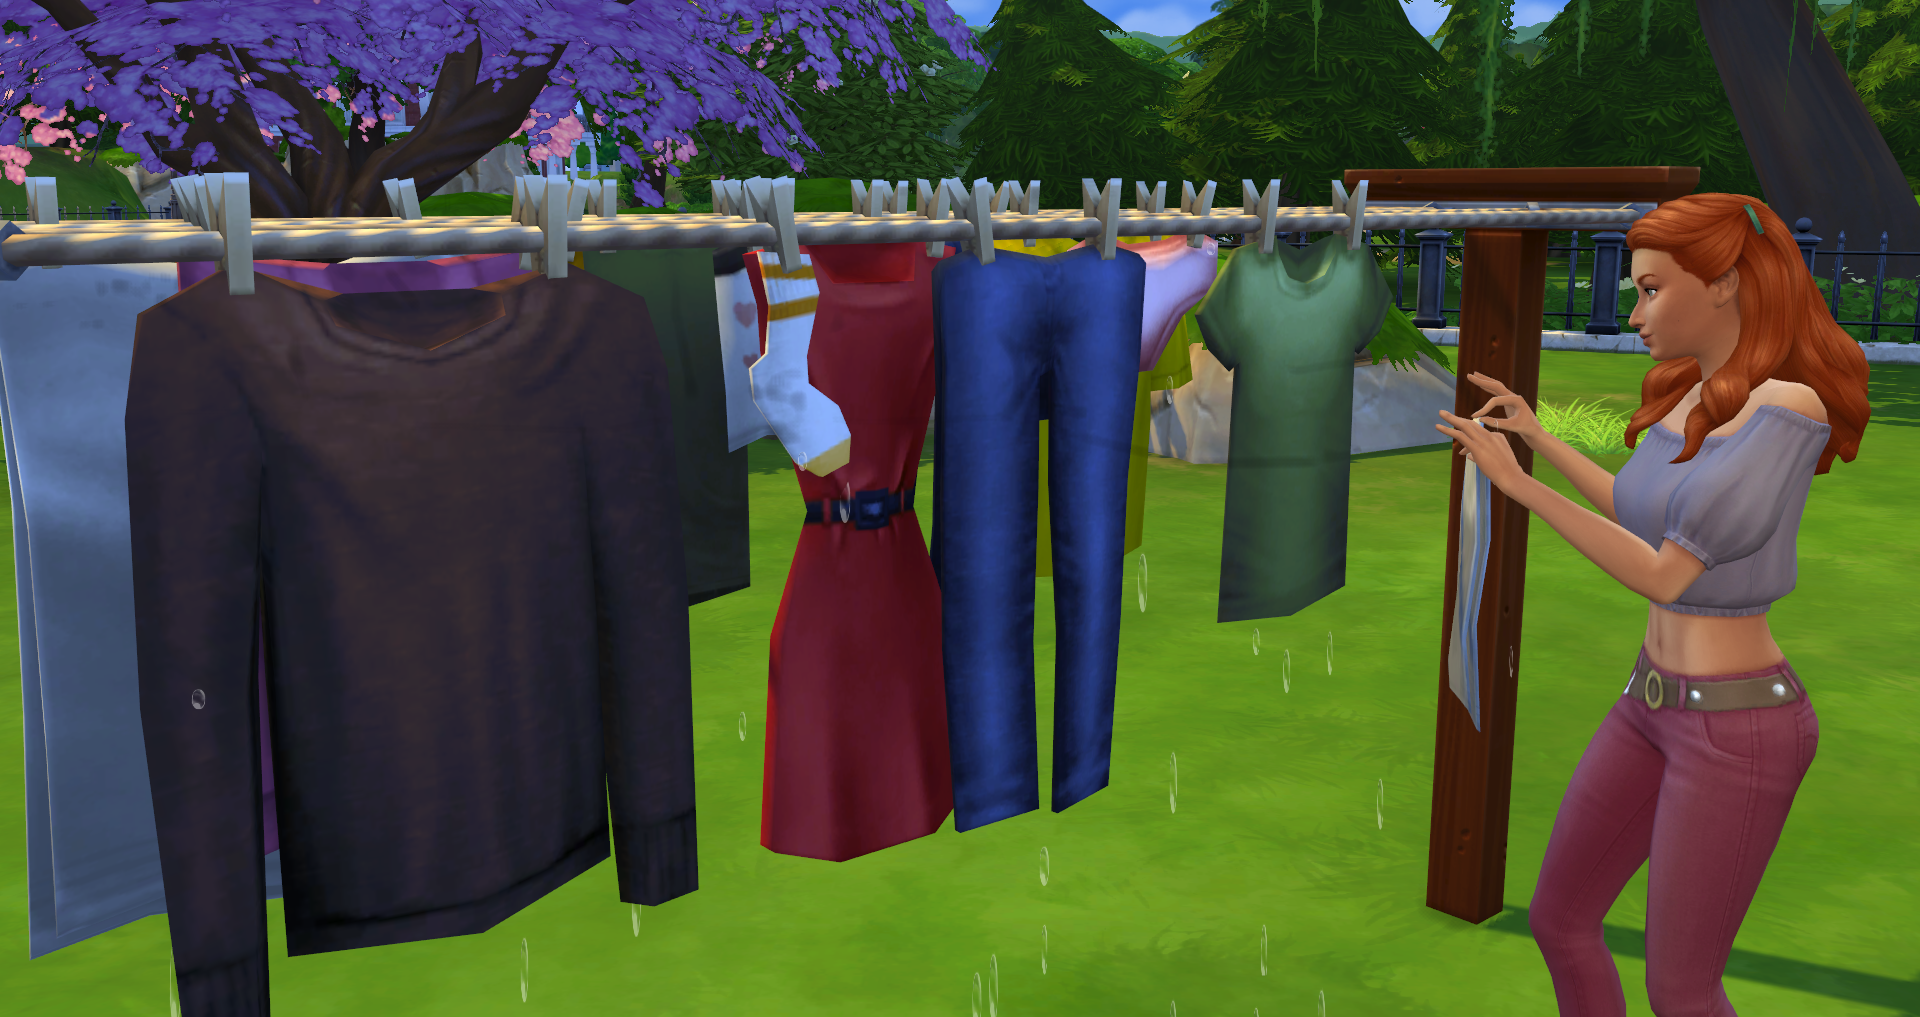 The Sims 4 Laundry Day Stuff Guide Simsvip